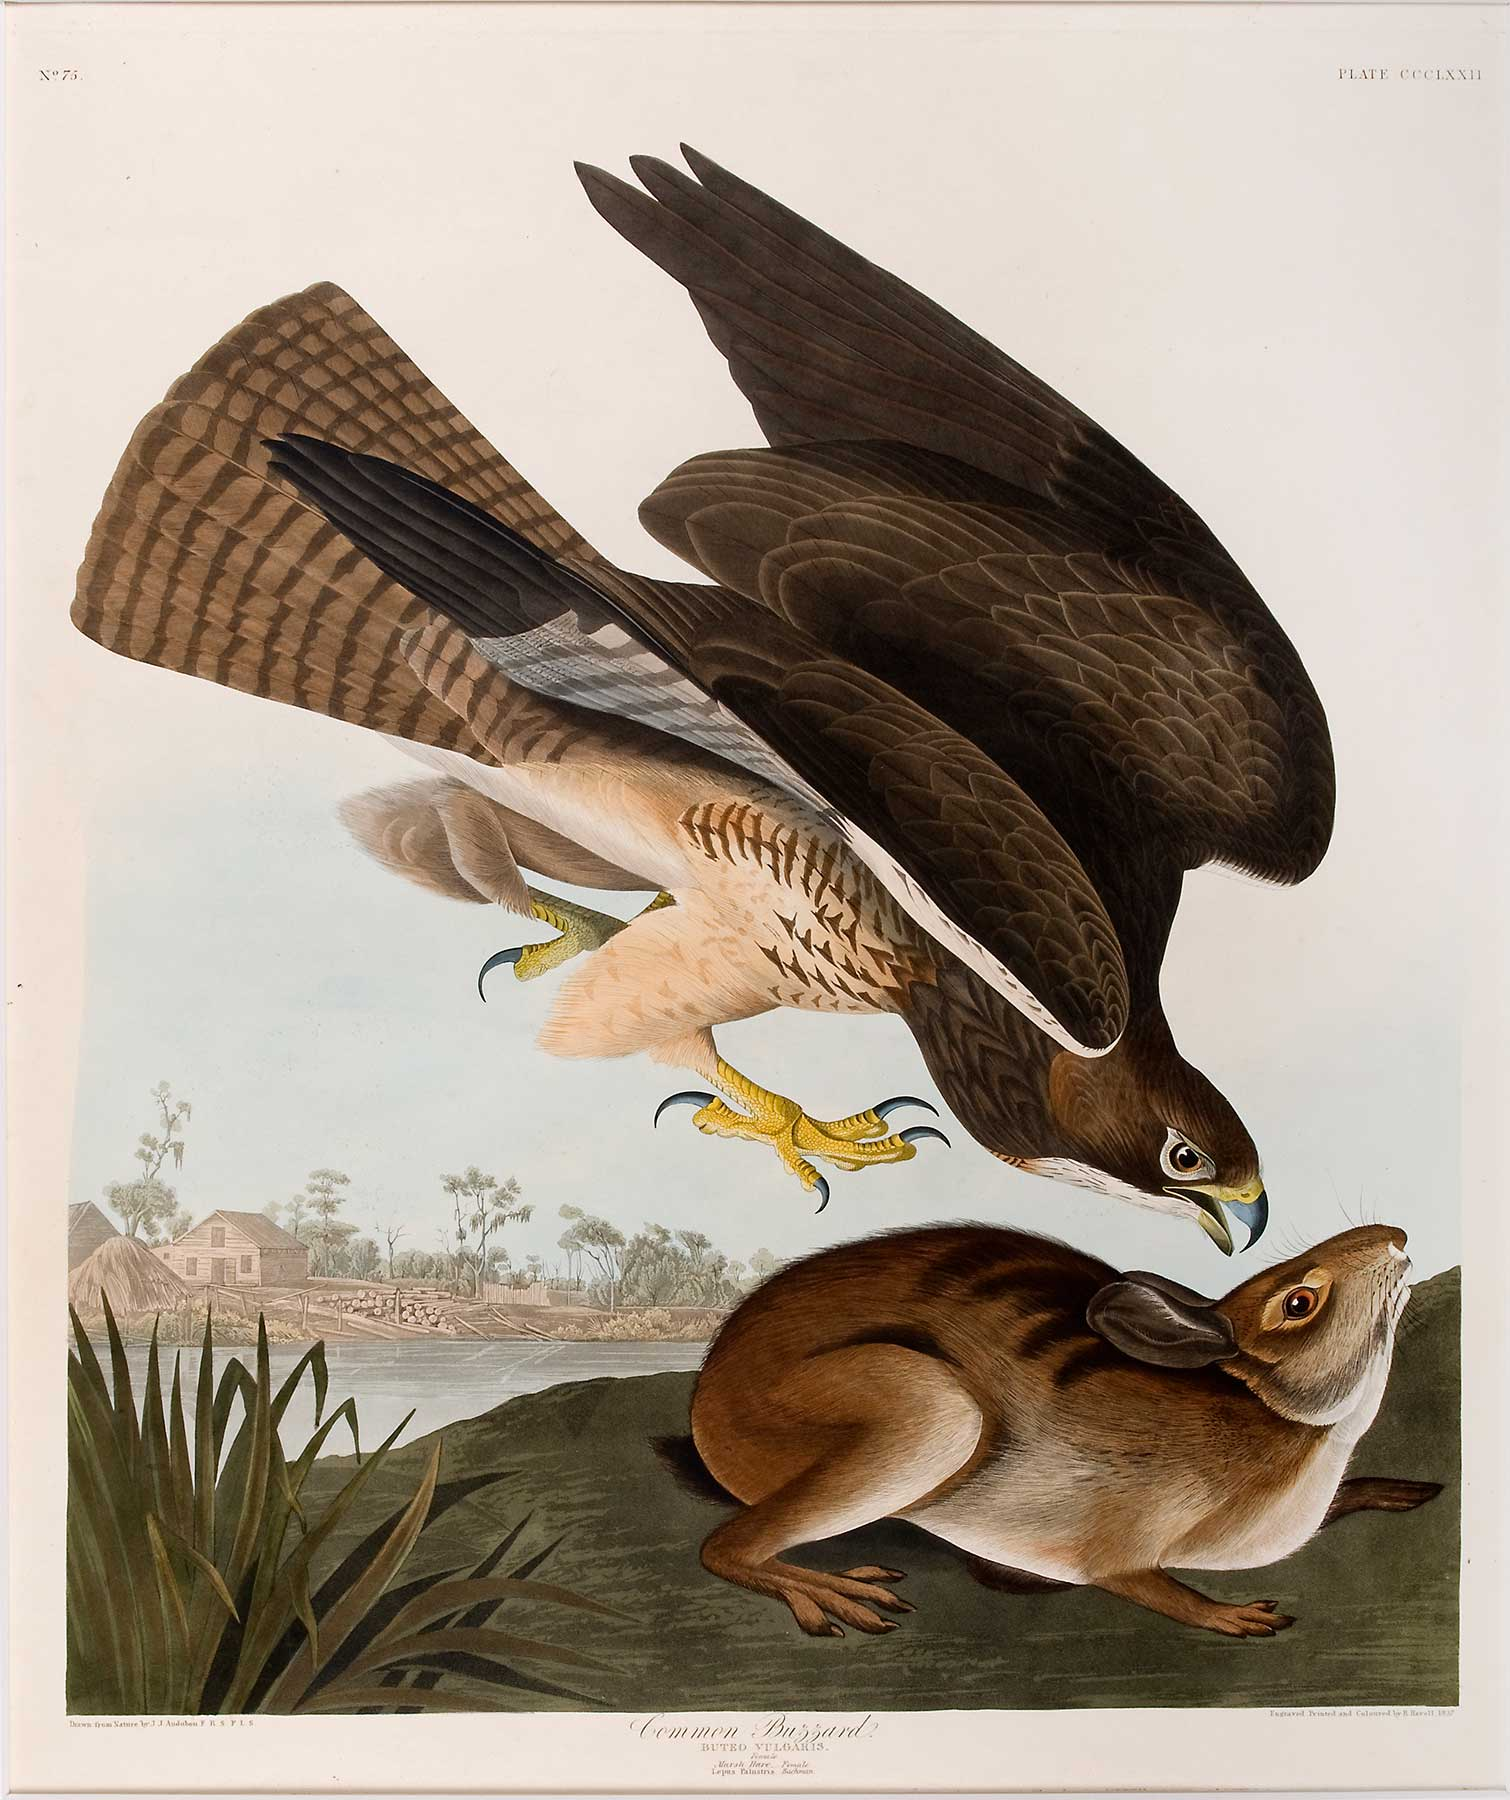 A buzzard descends upon a hare.